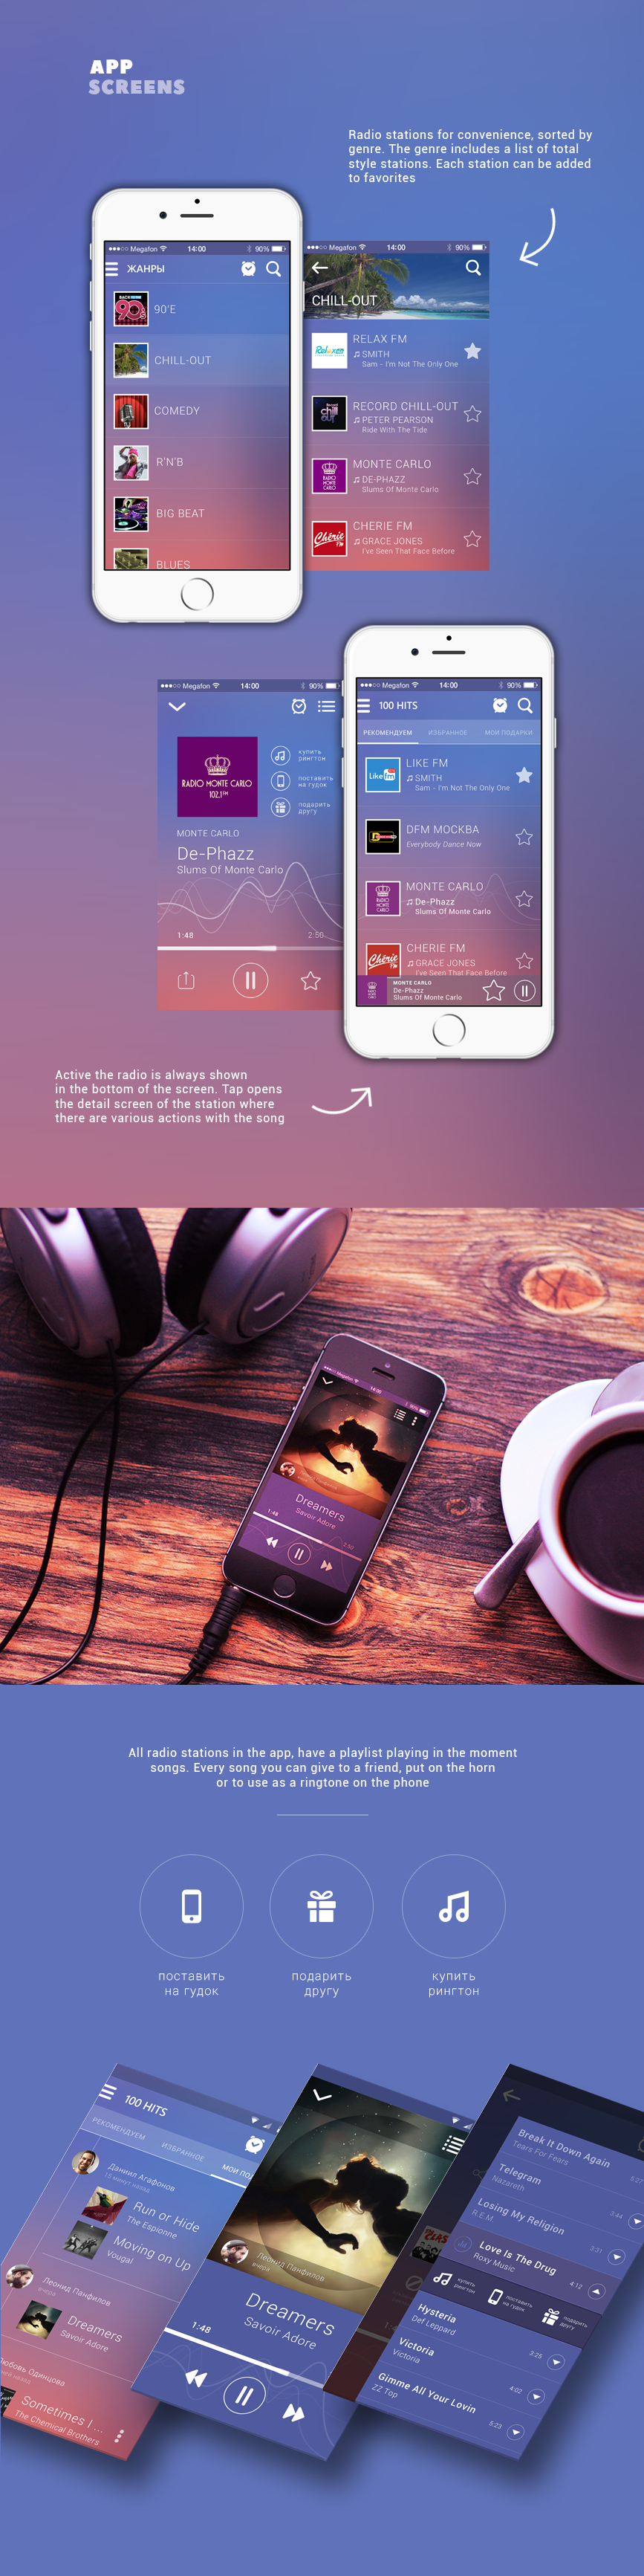 Radio app player Interface iphone STATION Musical icons song playlist sound alarm tablet iPad android